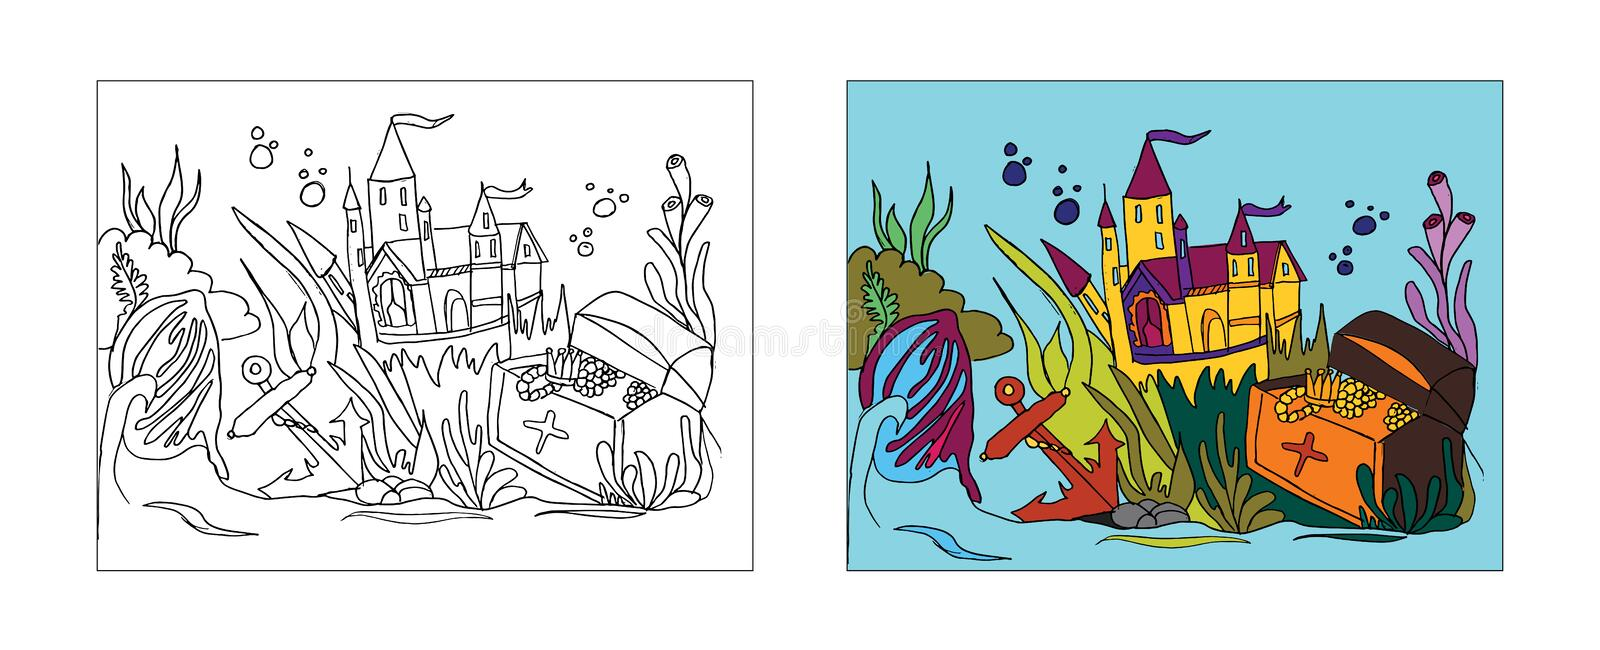 underwater city tale coloring book design monochrome colored versions freehand sketch adult anti stress page doodle